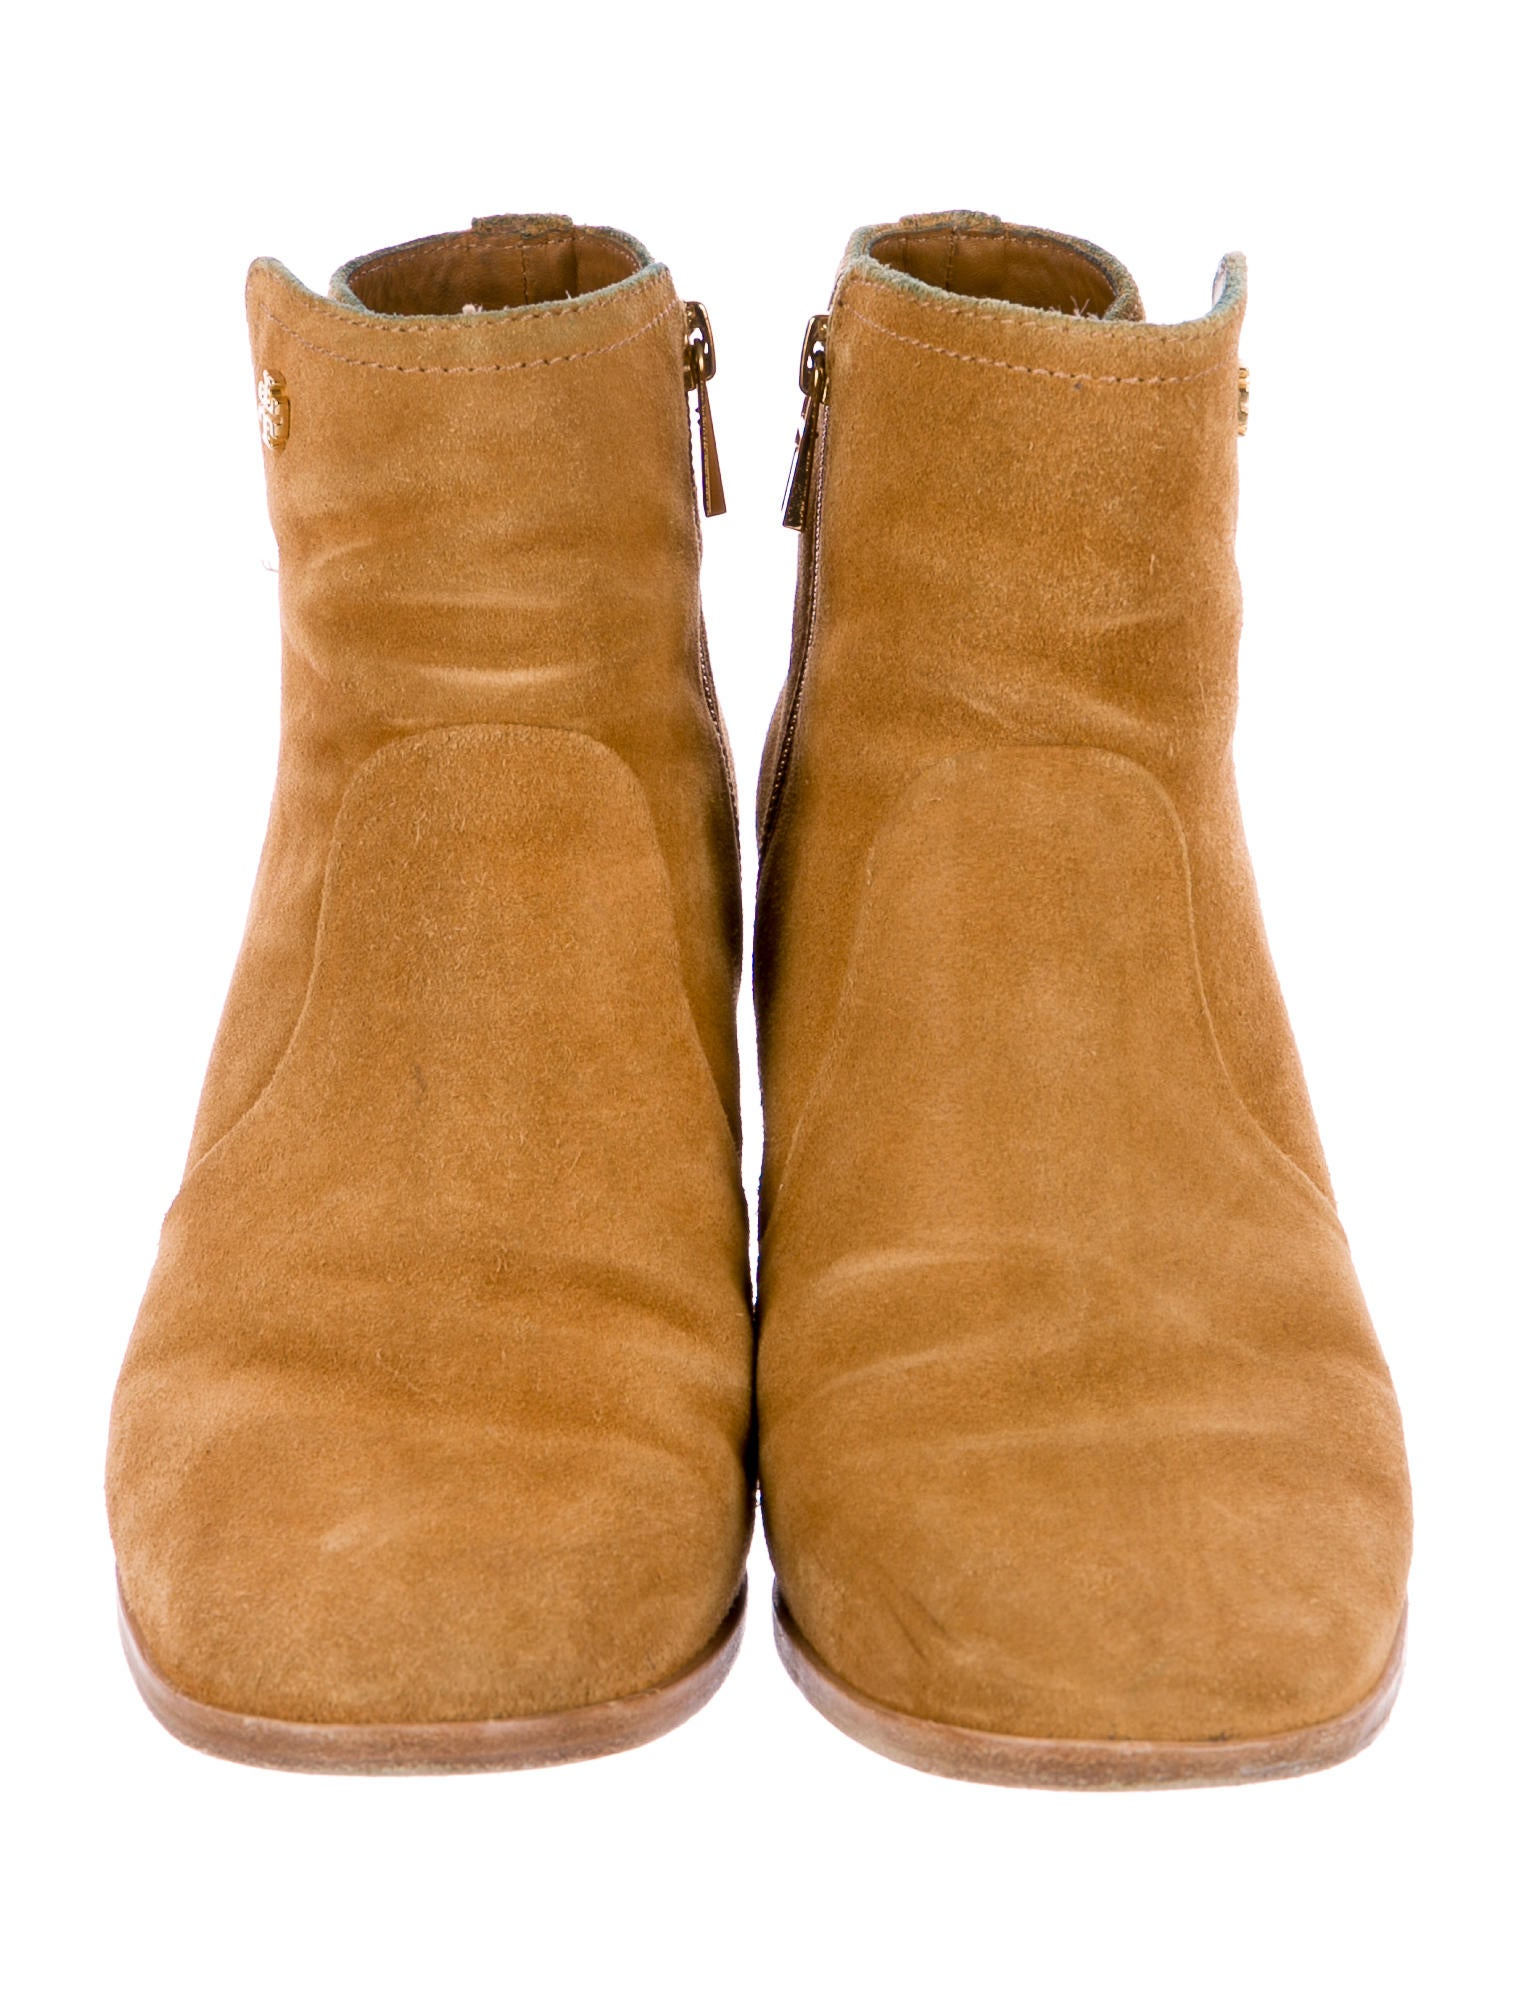 burch suede ankle boots shoes wto109891 the